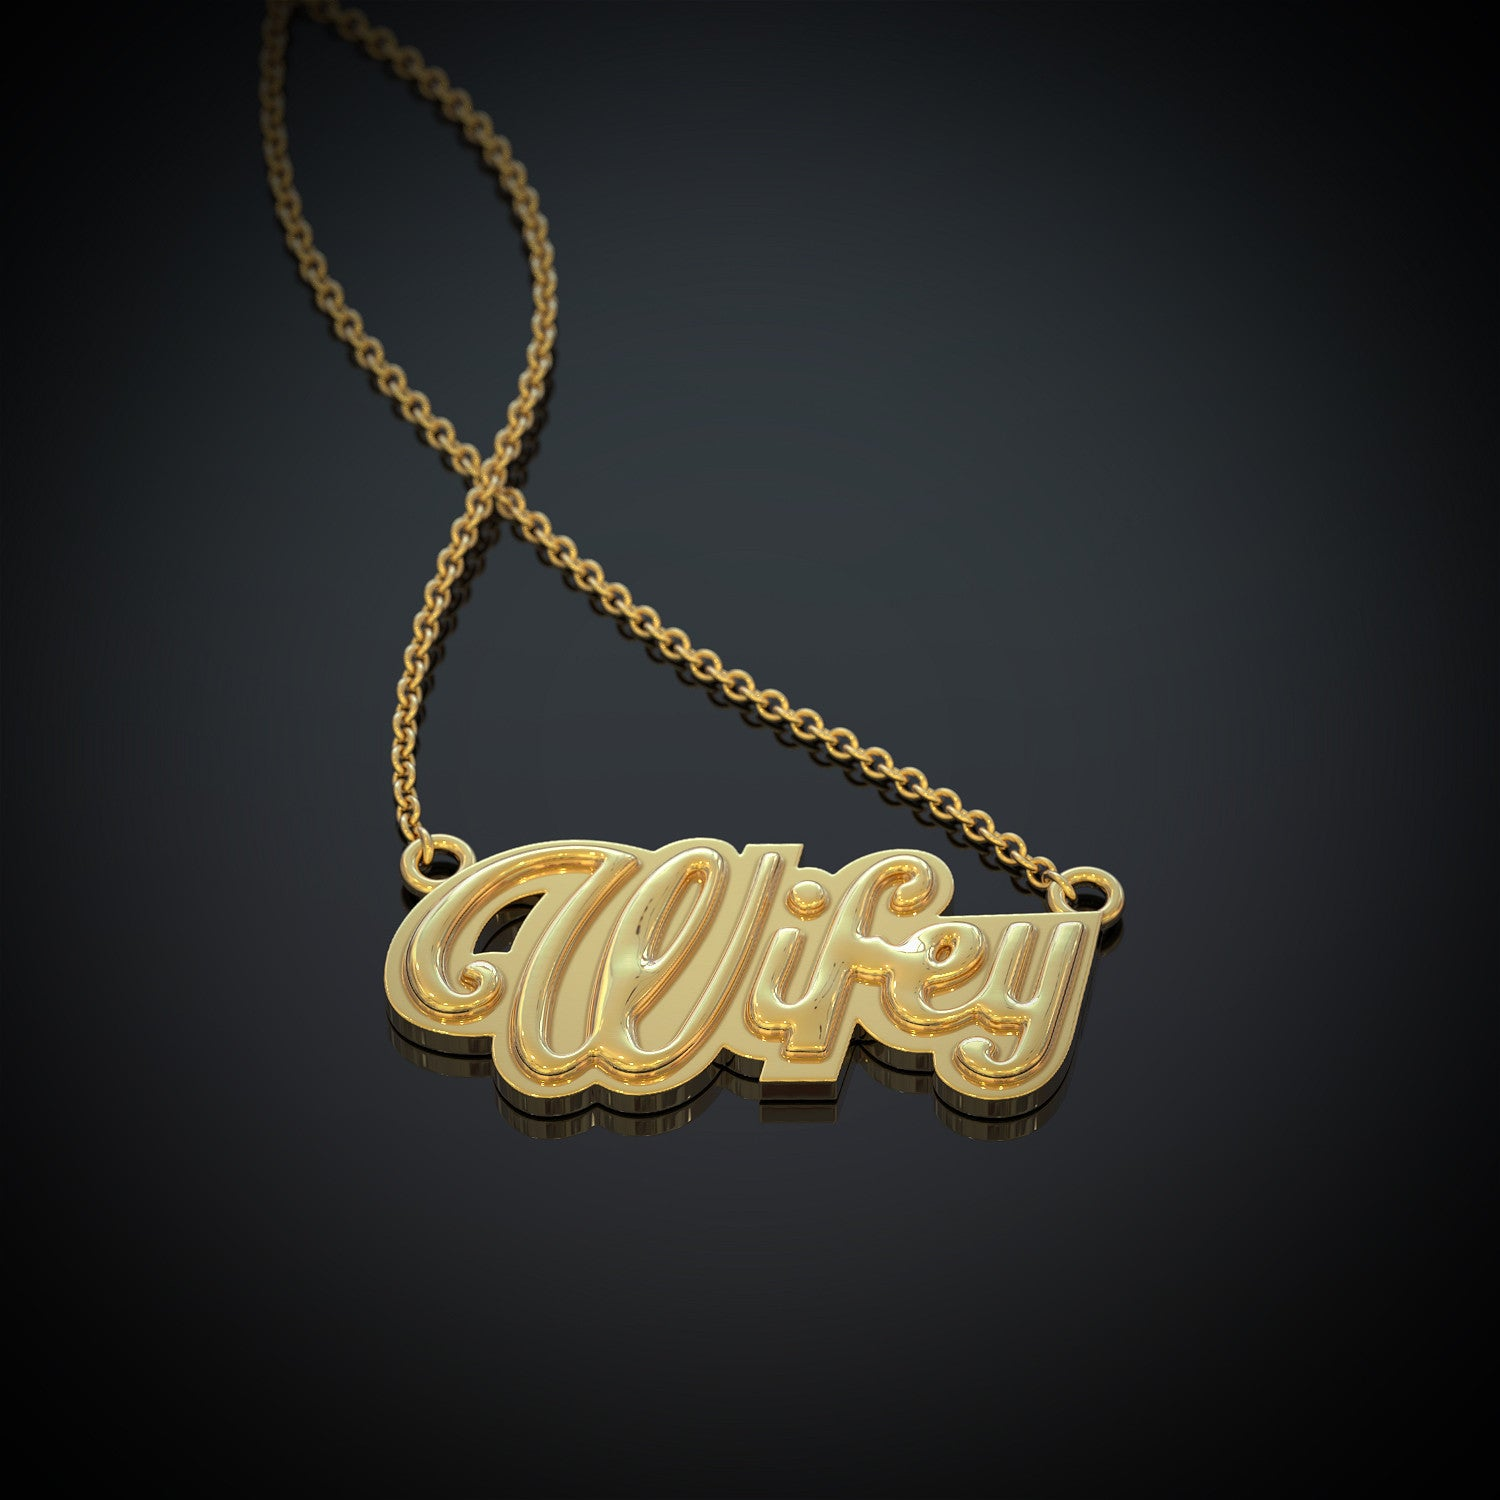 Wifey Necklace - LIMITED EDITION